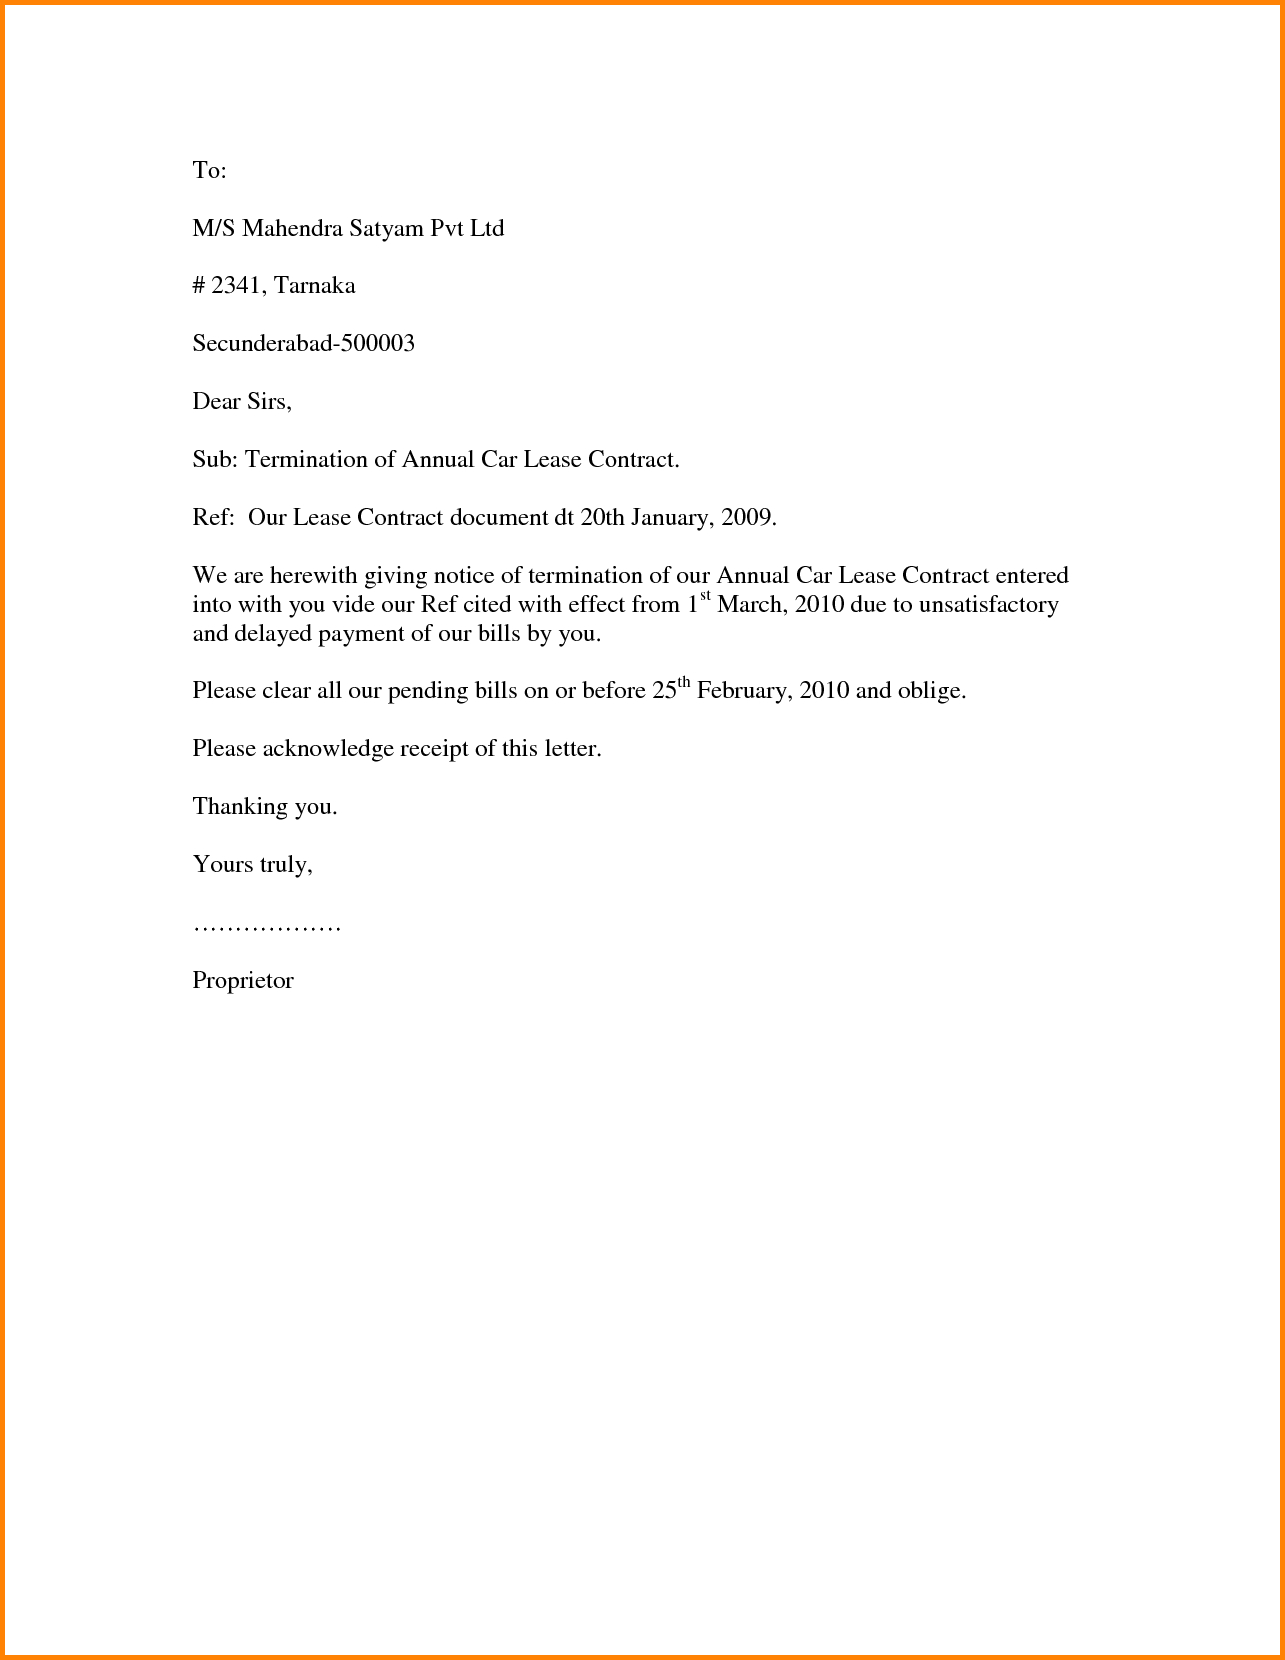 Tenant Warning Letter Template - How to End Letters How to End A Resignation Letter Fancy Resume How